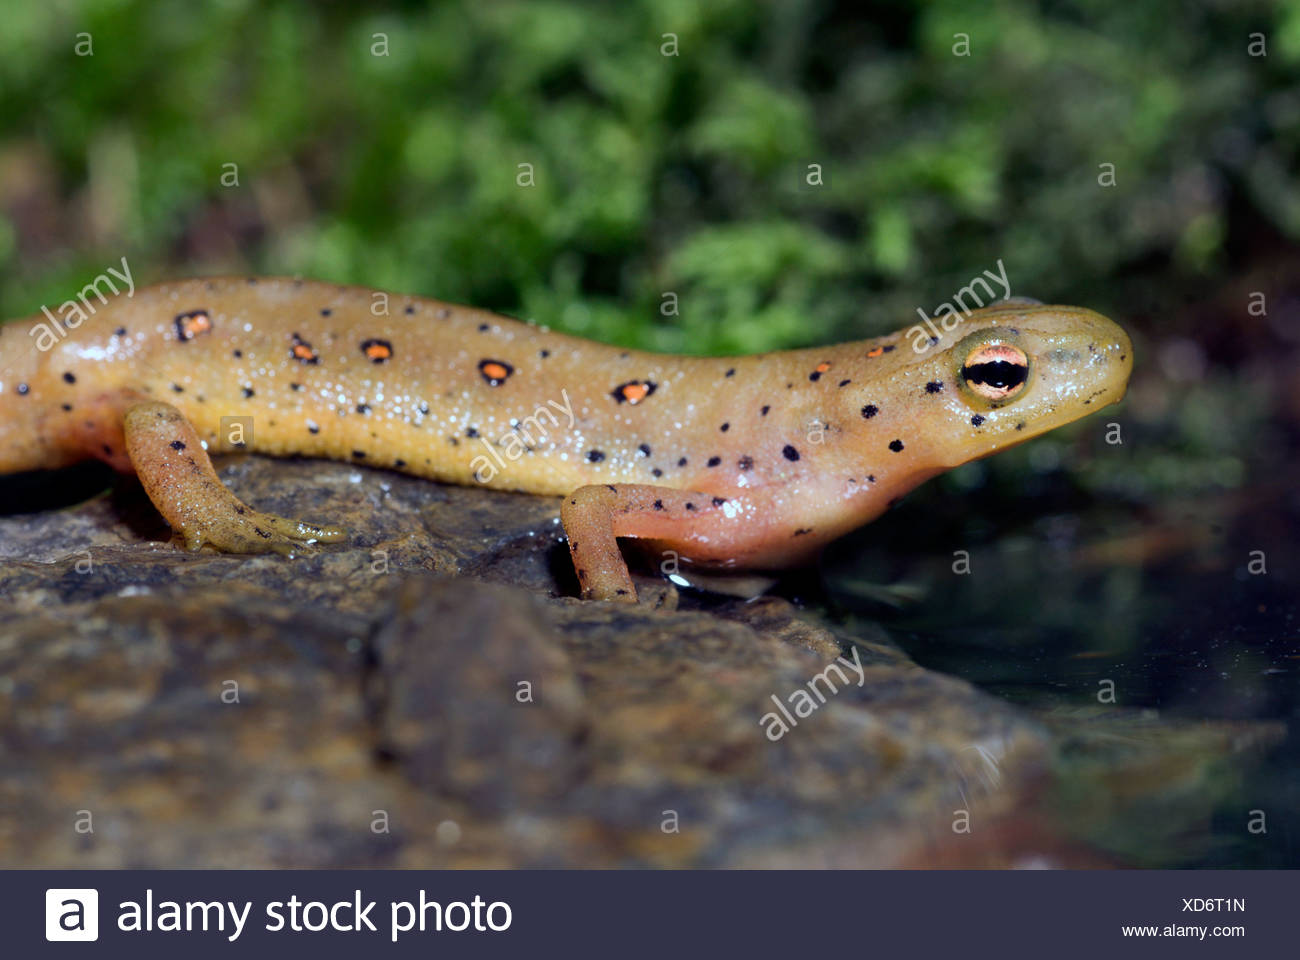 eft, red-spotted newt, red eft, eastern newt (Notophthalmus viridescens), on a stone Stock Photo